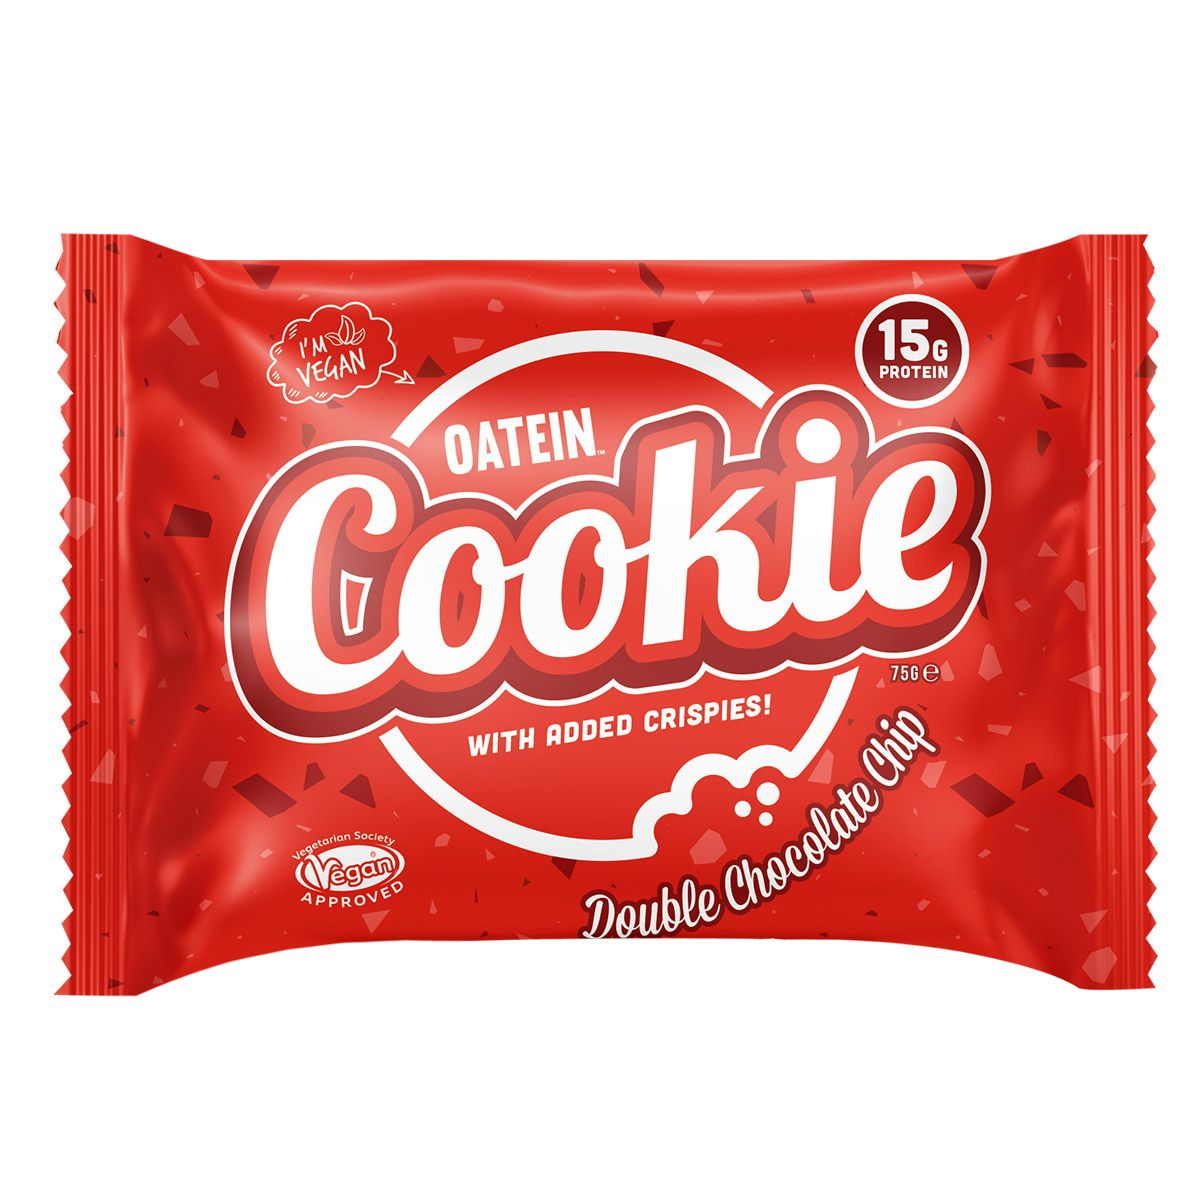 Oatein Protein Cookie - Double Chocolate Chip 75g